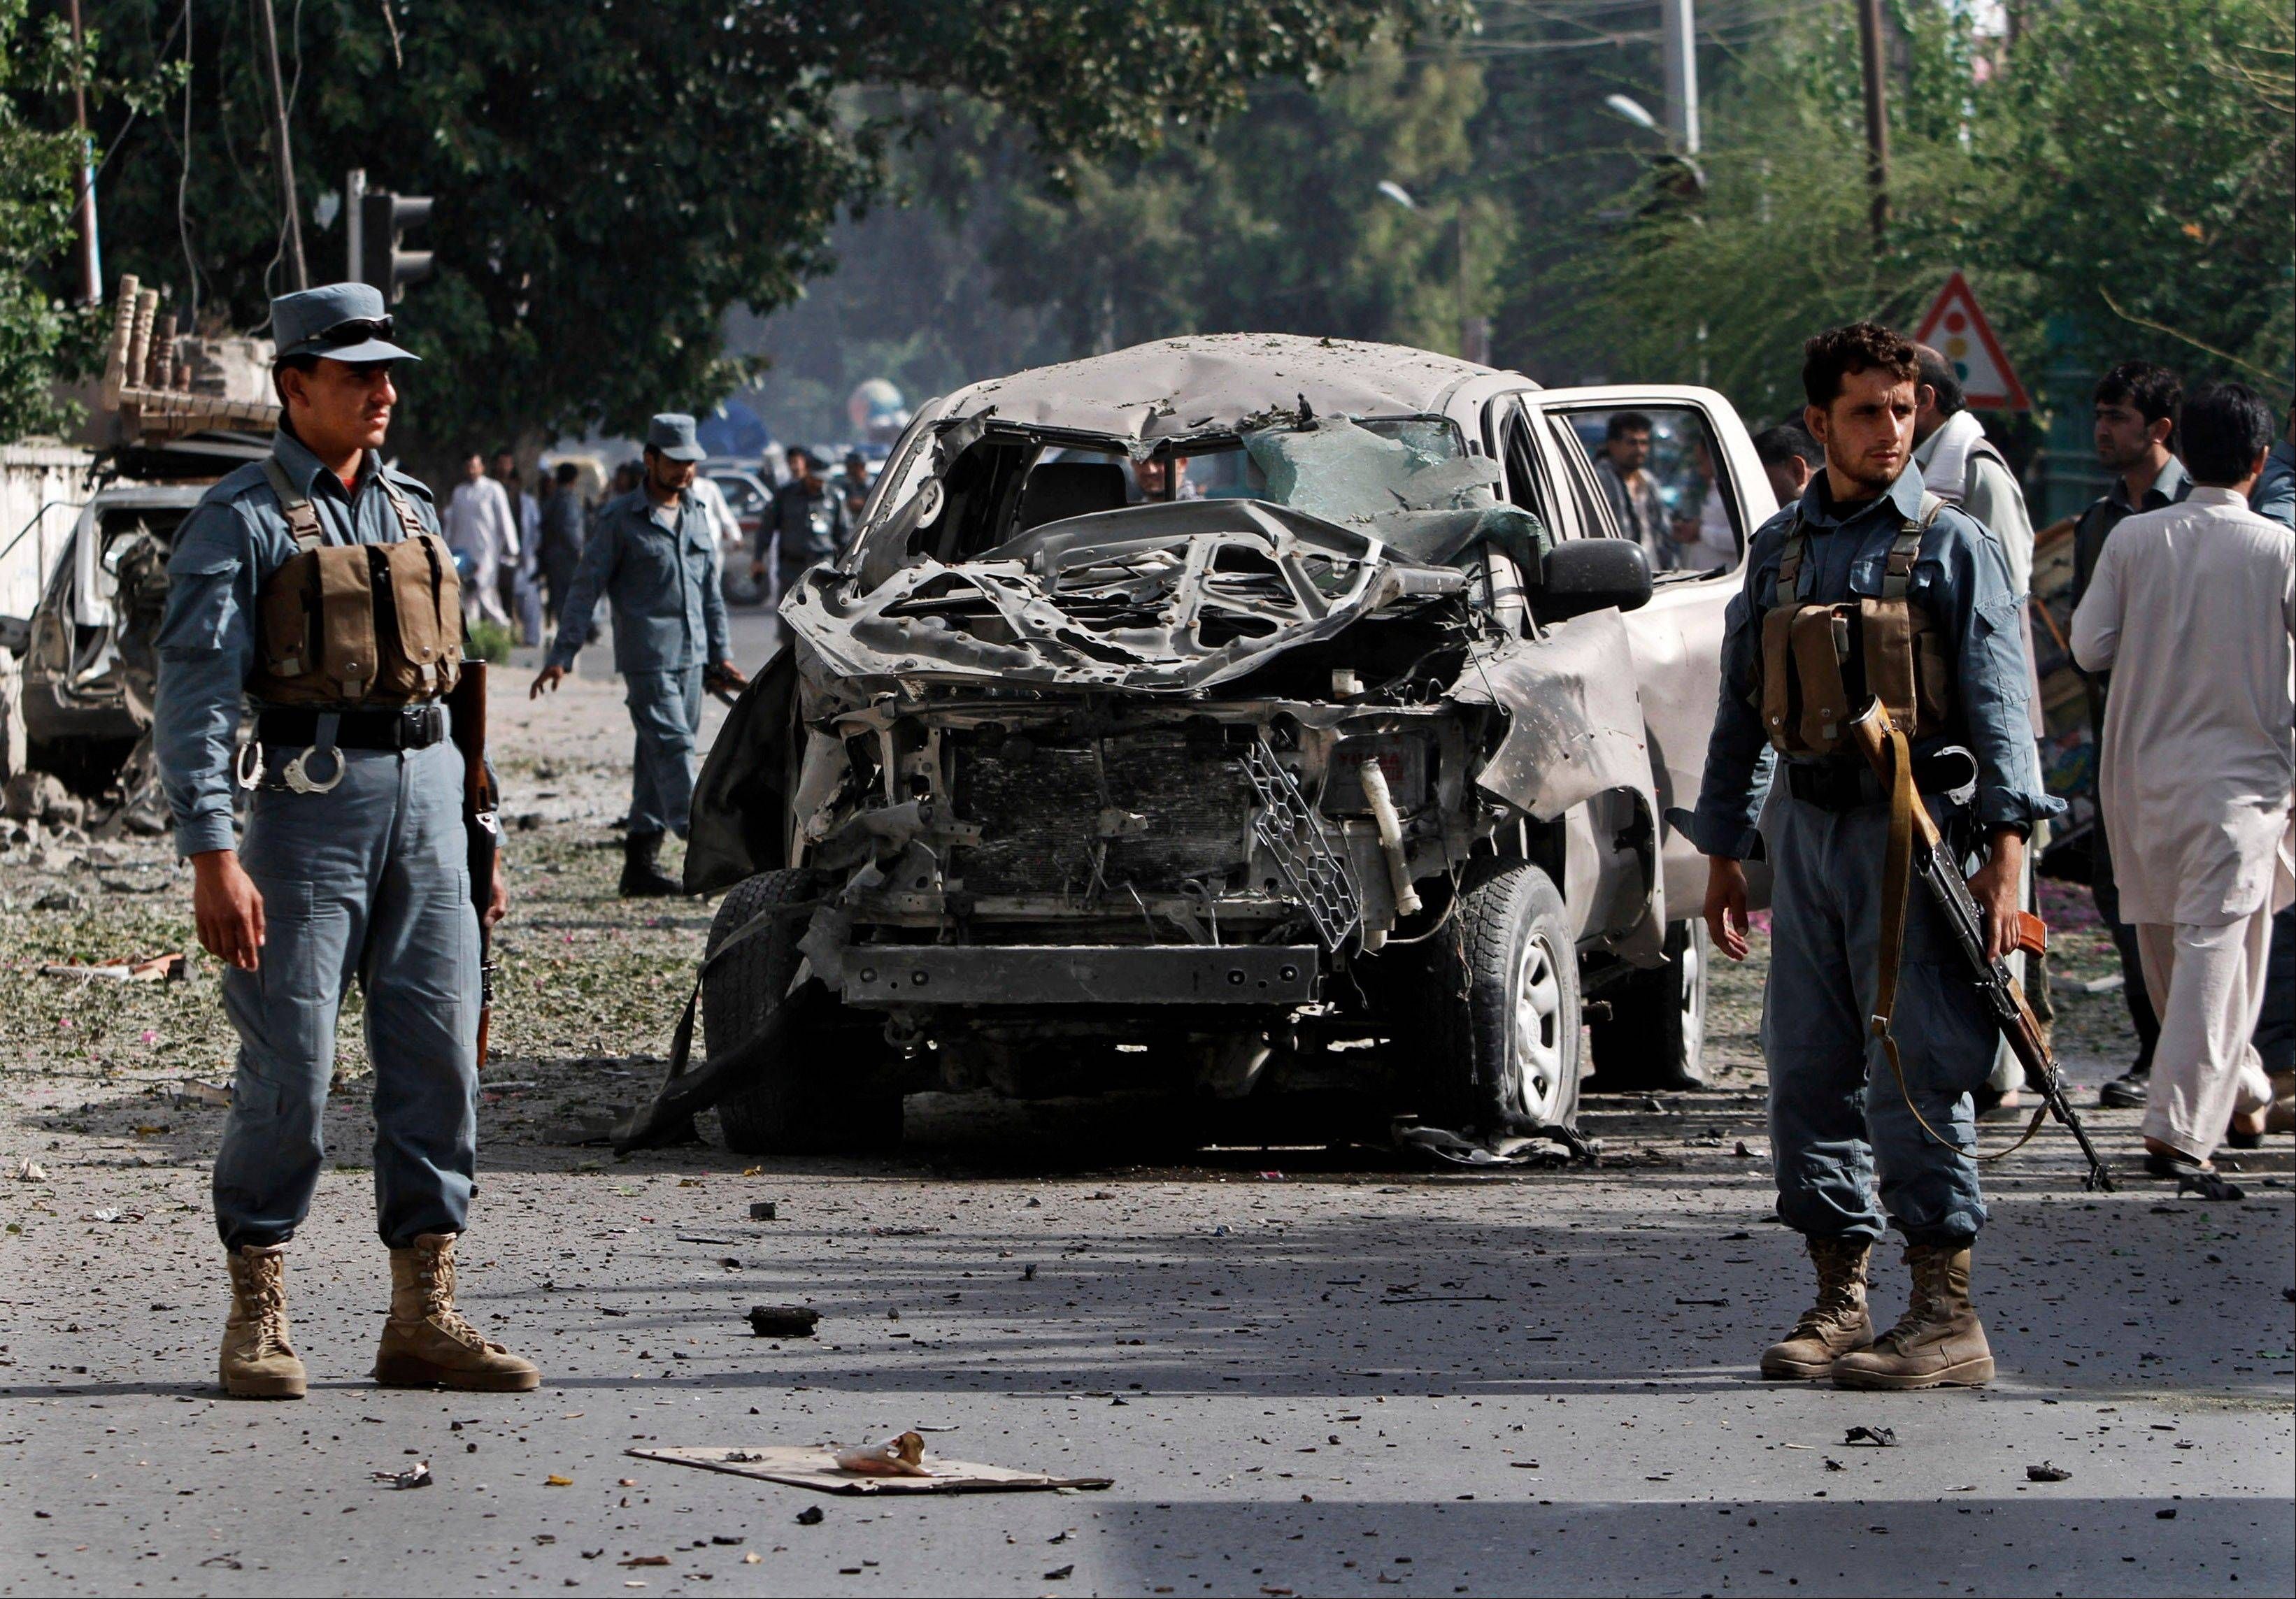 Afghan Police officers inspect the wreckage of vehicle after a bomb explosion in the city of Jalalabad east of Kabul, Afghanistan, Monday. At least five civilians were injured as a bomb targeting a government employees� bus went off Monday morning, a police source said.